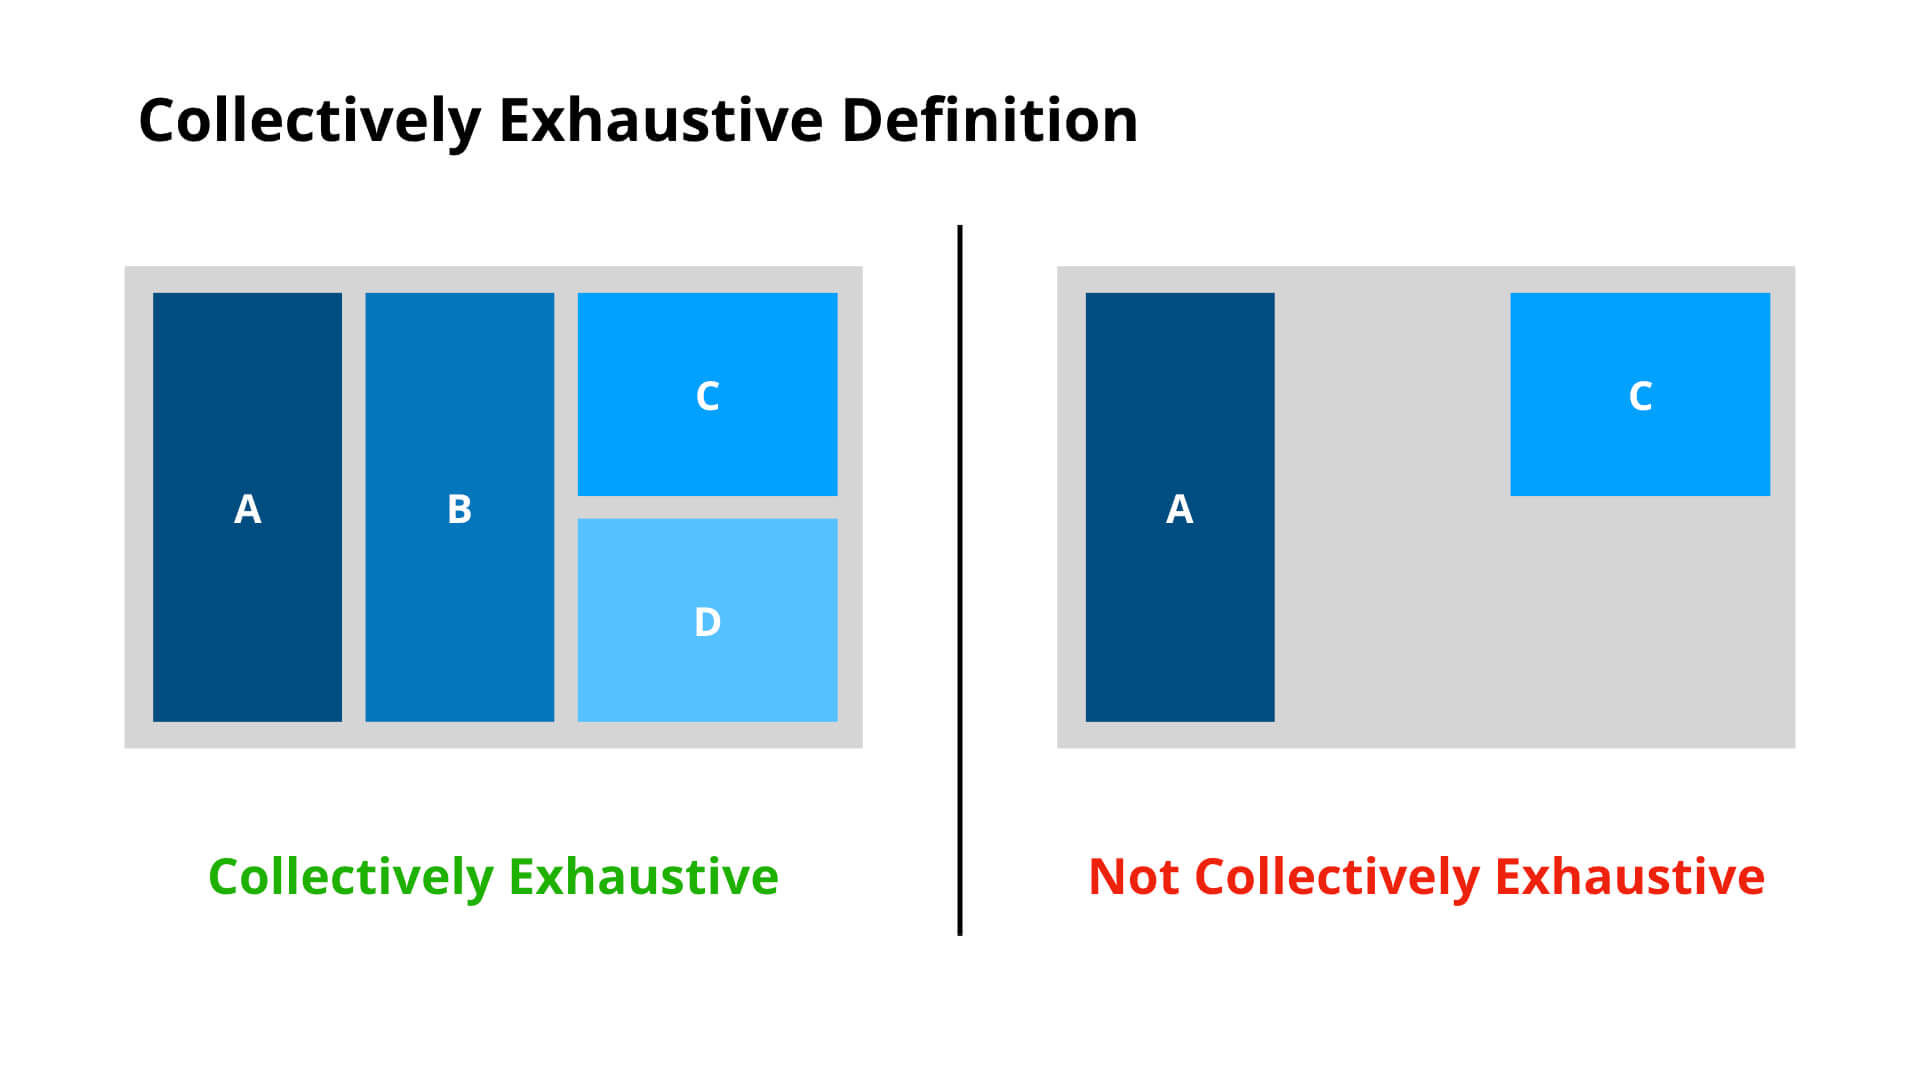 Collectively Exhaustive Definition